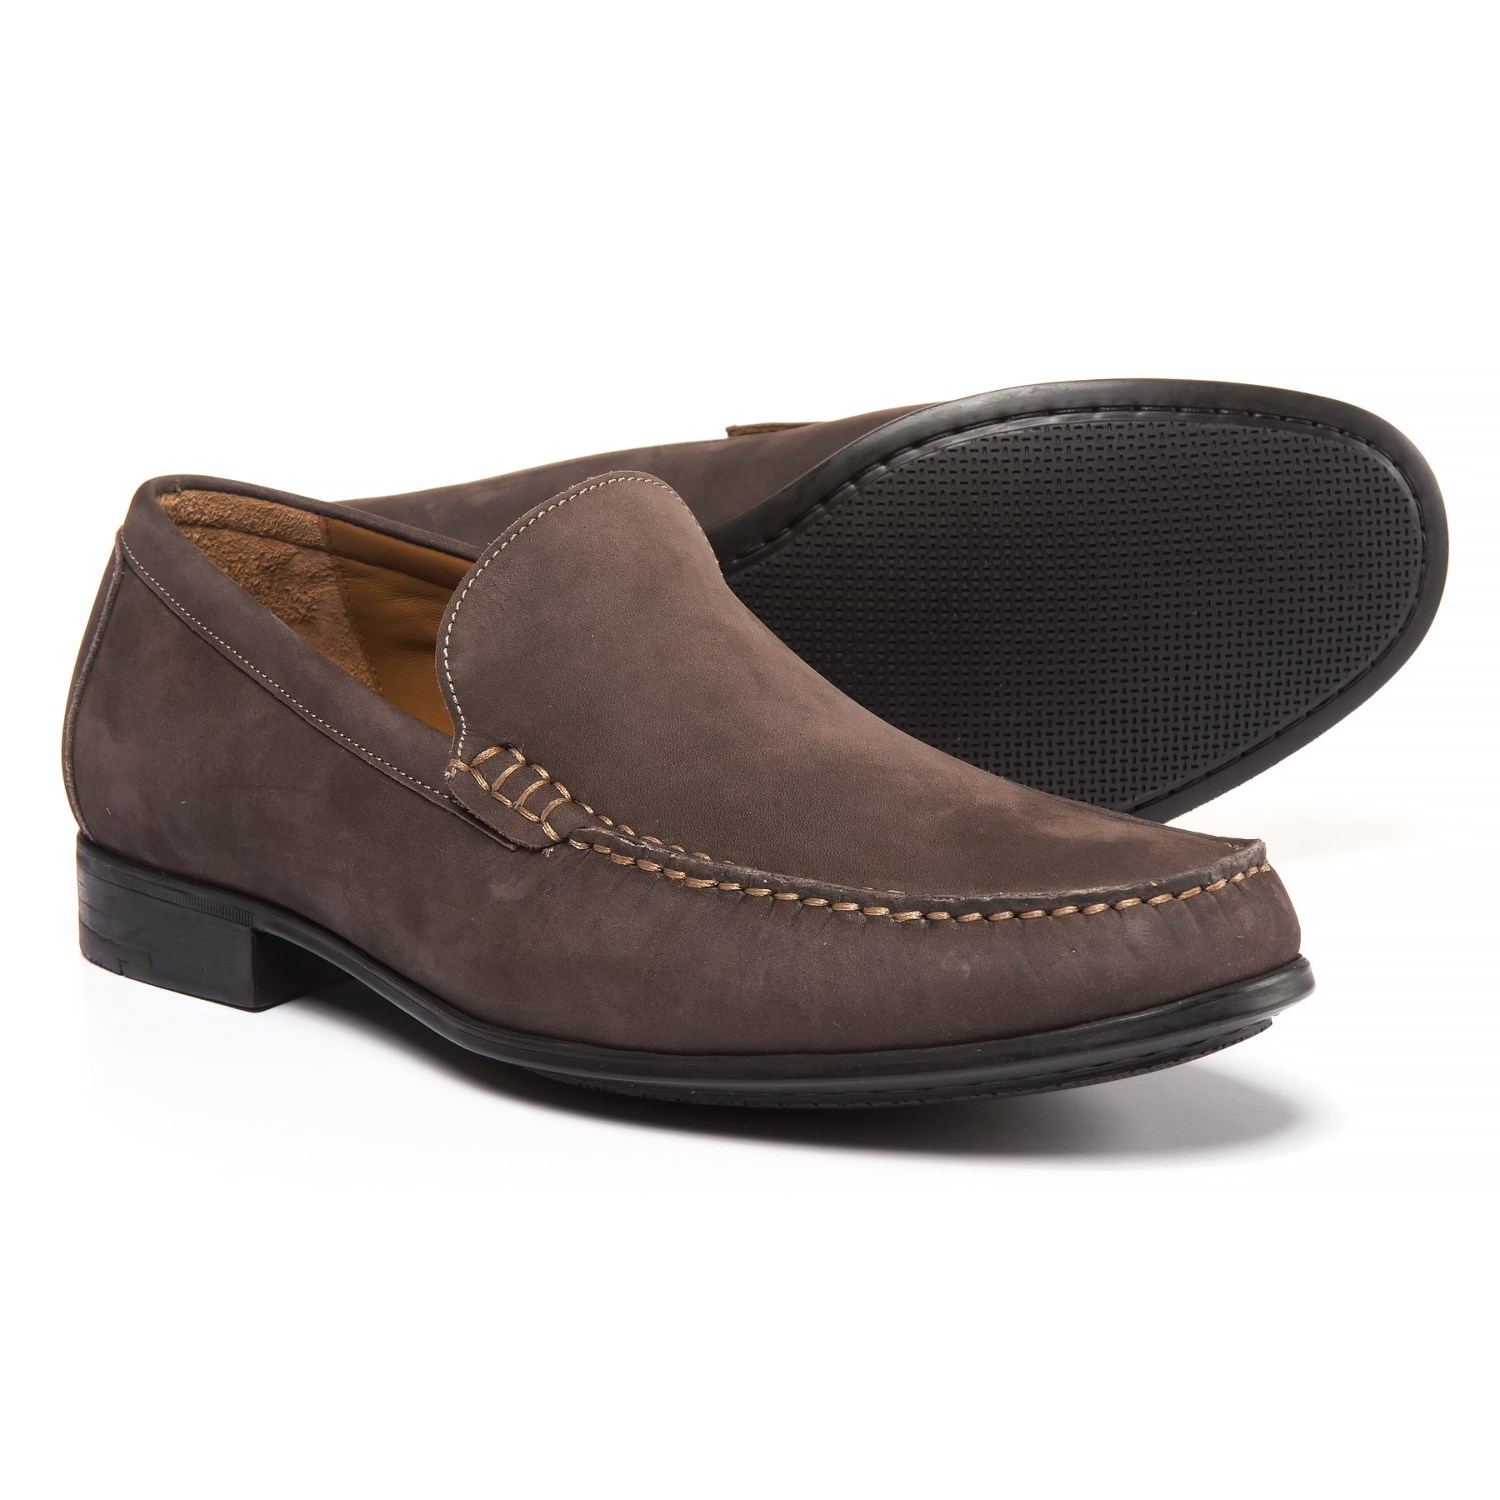 frye shoes dylan loafers bar & grill